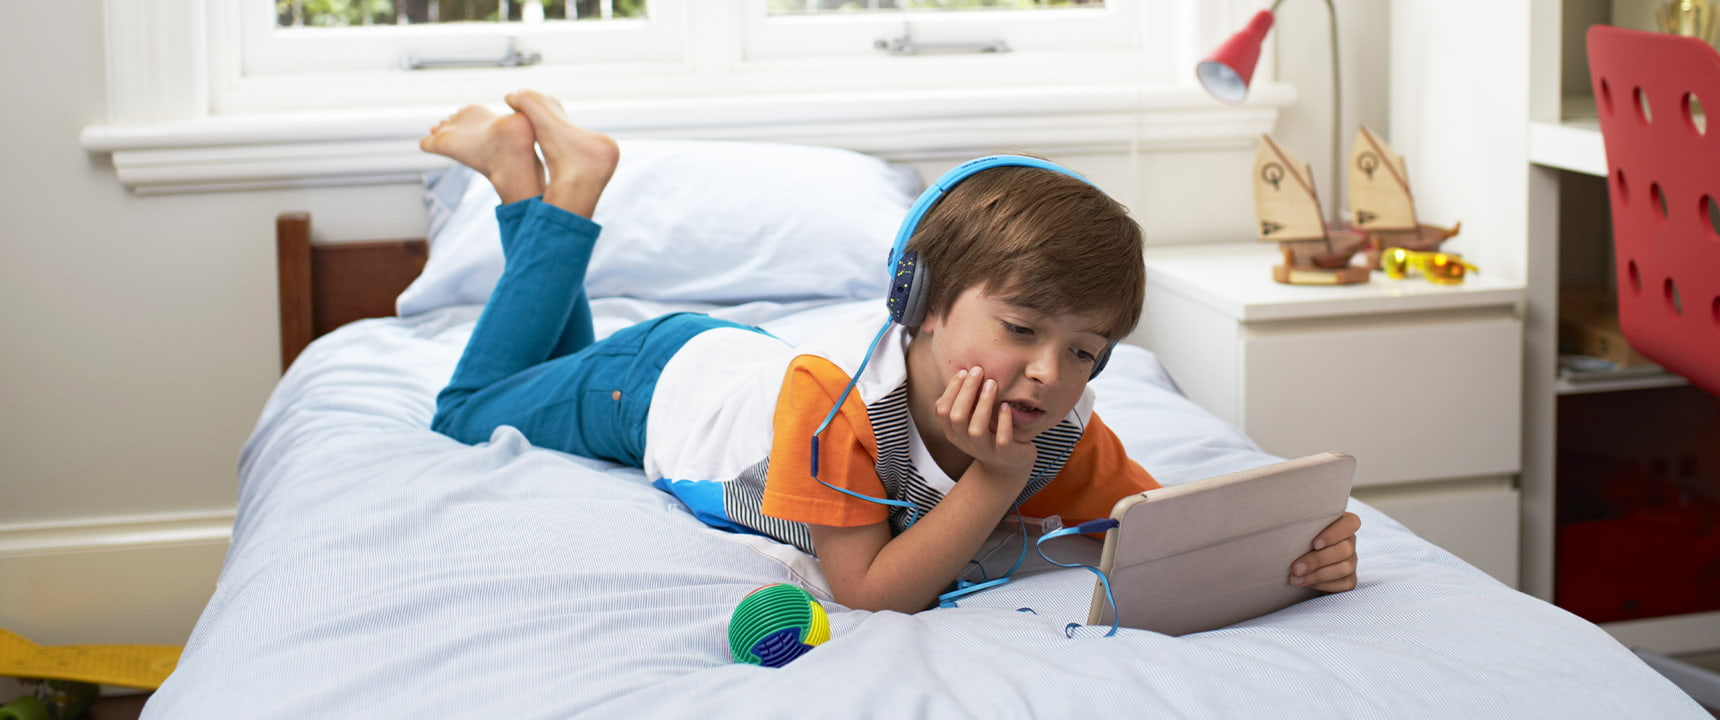 Young boy on his bed watches his iPad with headphones using Telstra cable internet